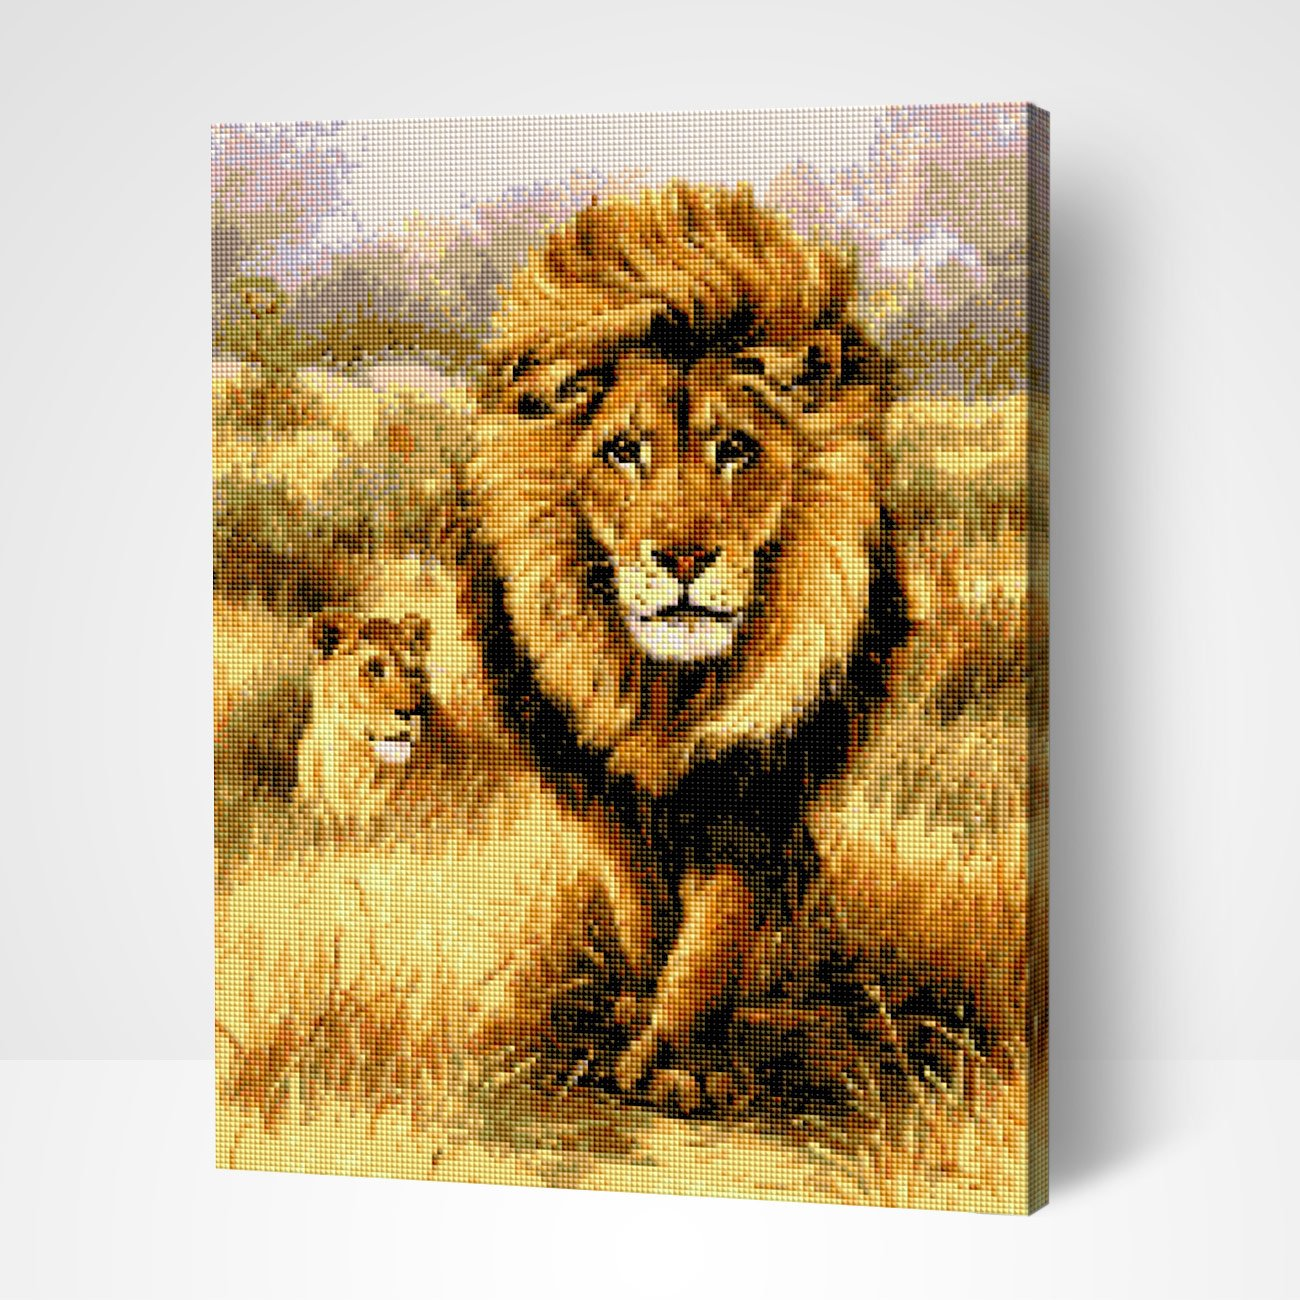 Savannah Lions - Diamond Painting